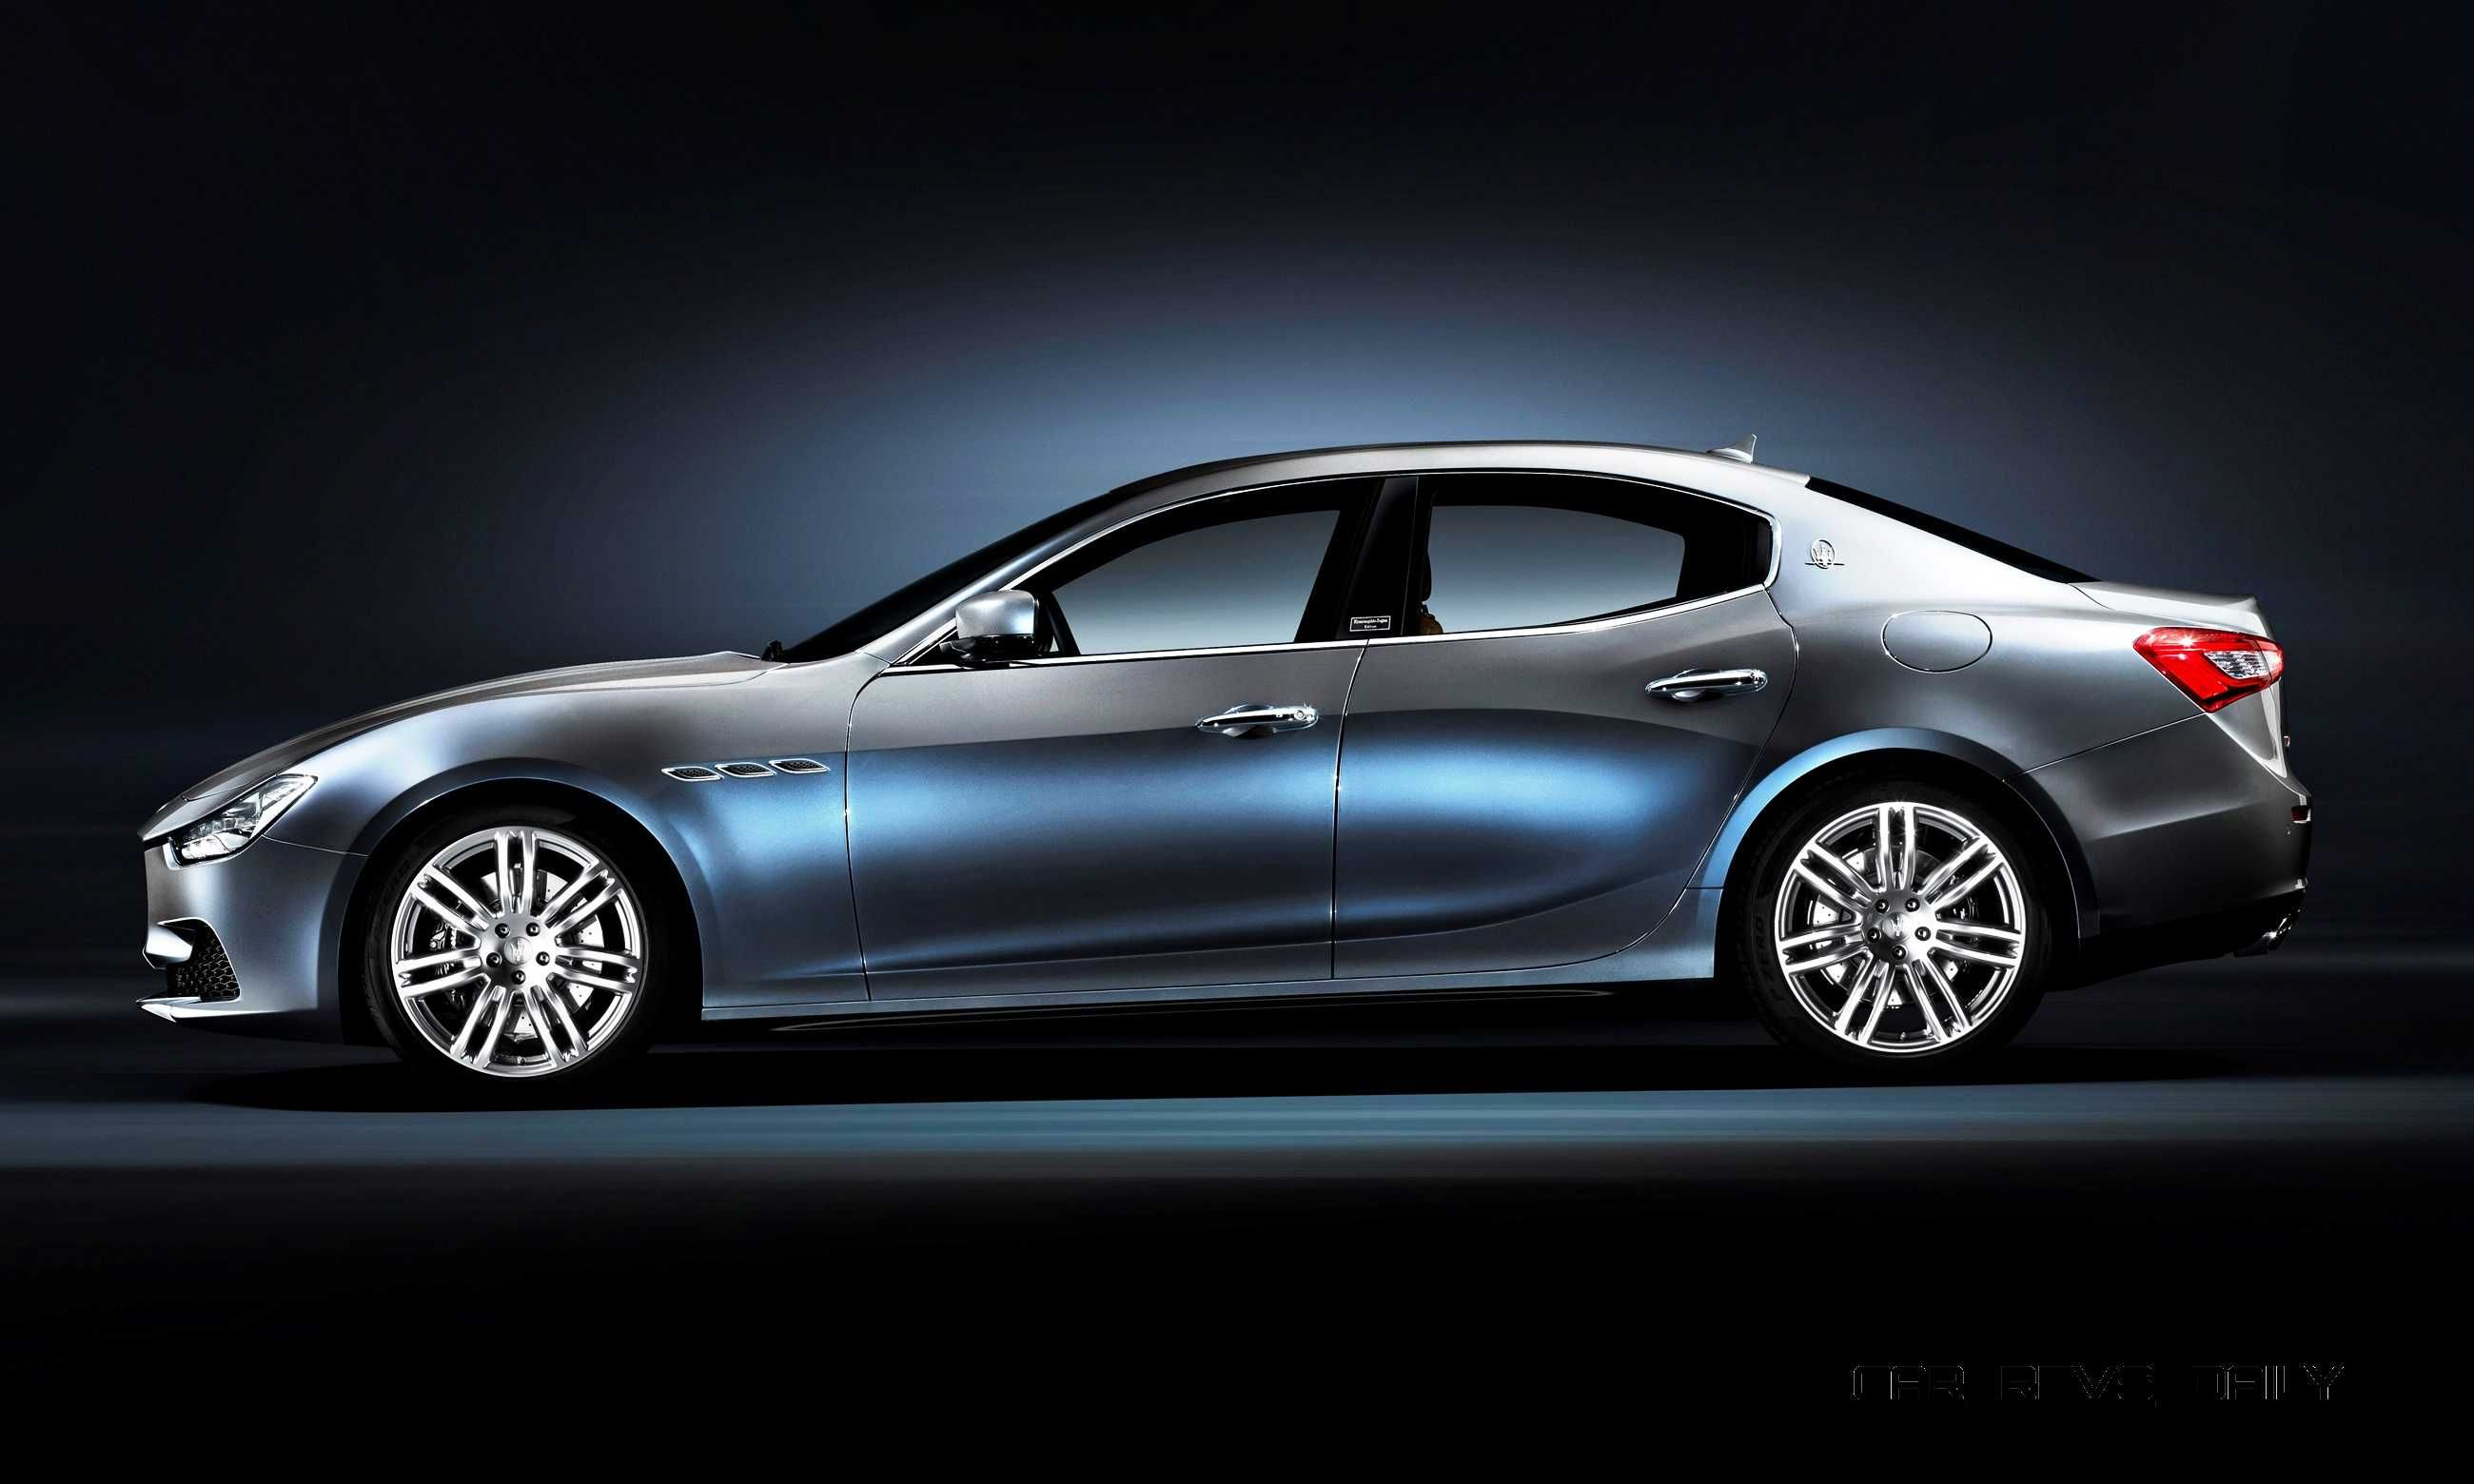 2015 Maserati Ghibli Abstract Backgrounds 5193) Wallpaper